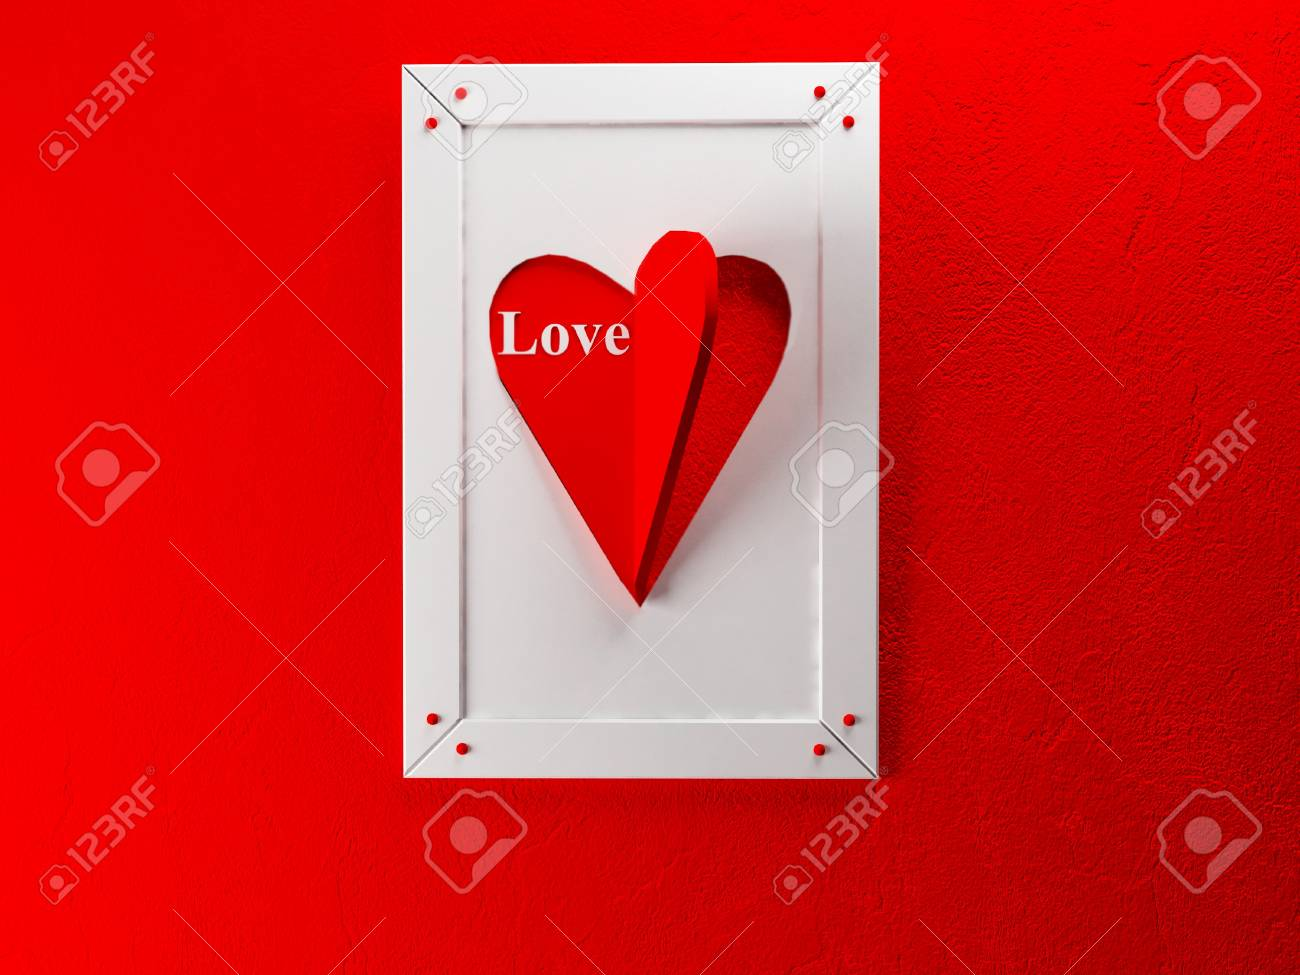 creatine picture on the wall for St. Valentine's Day Stock Photo - 17358444